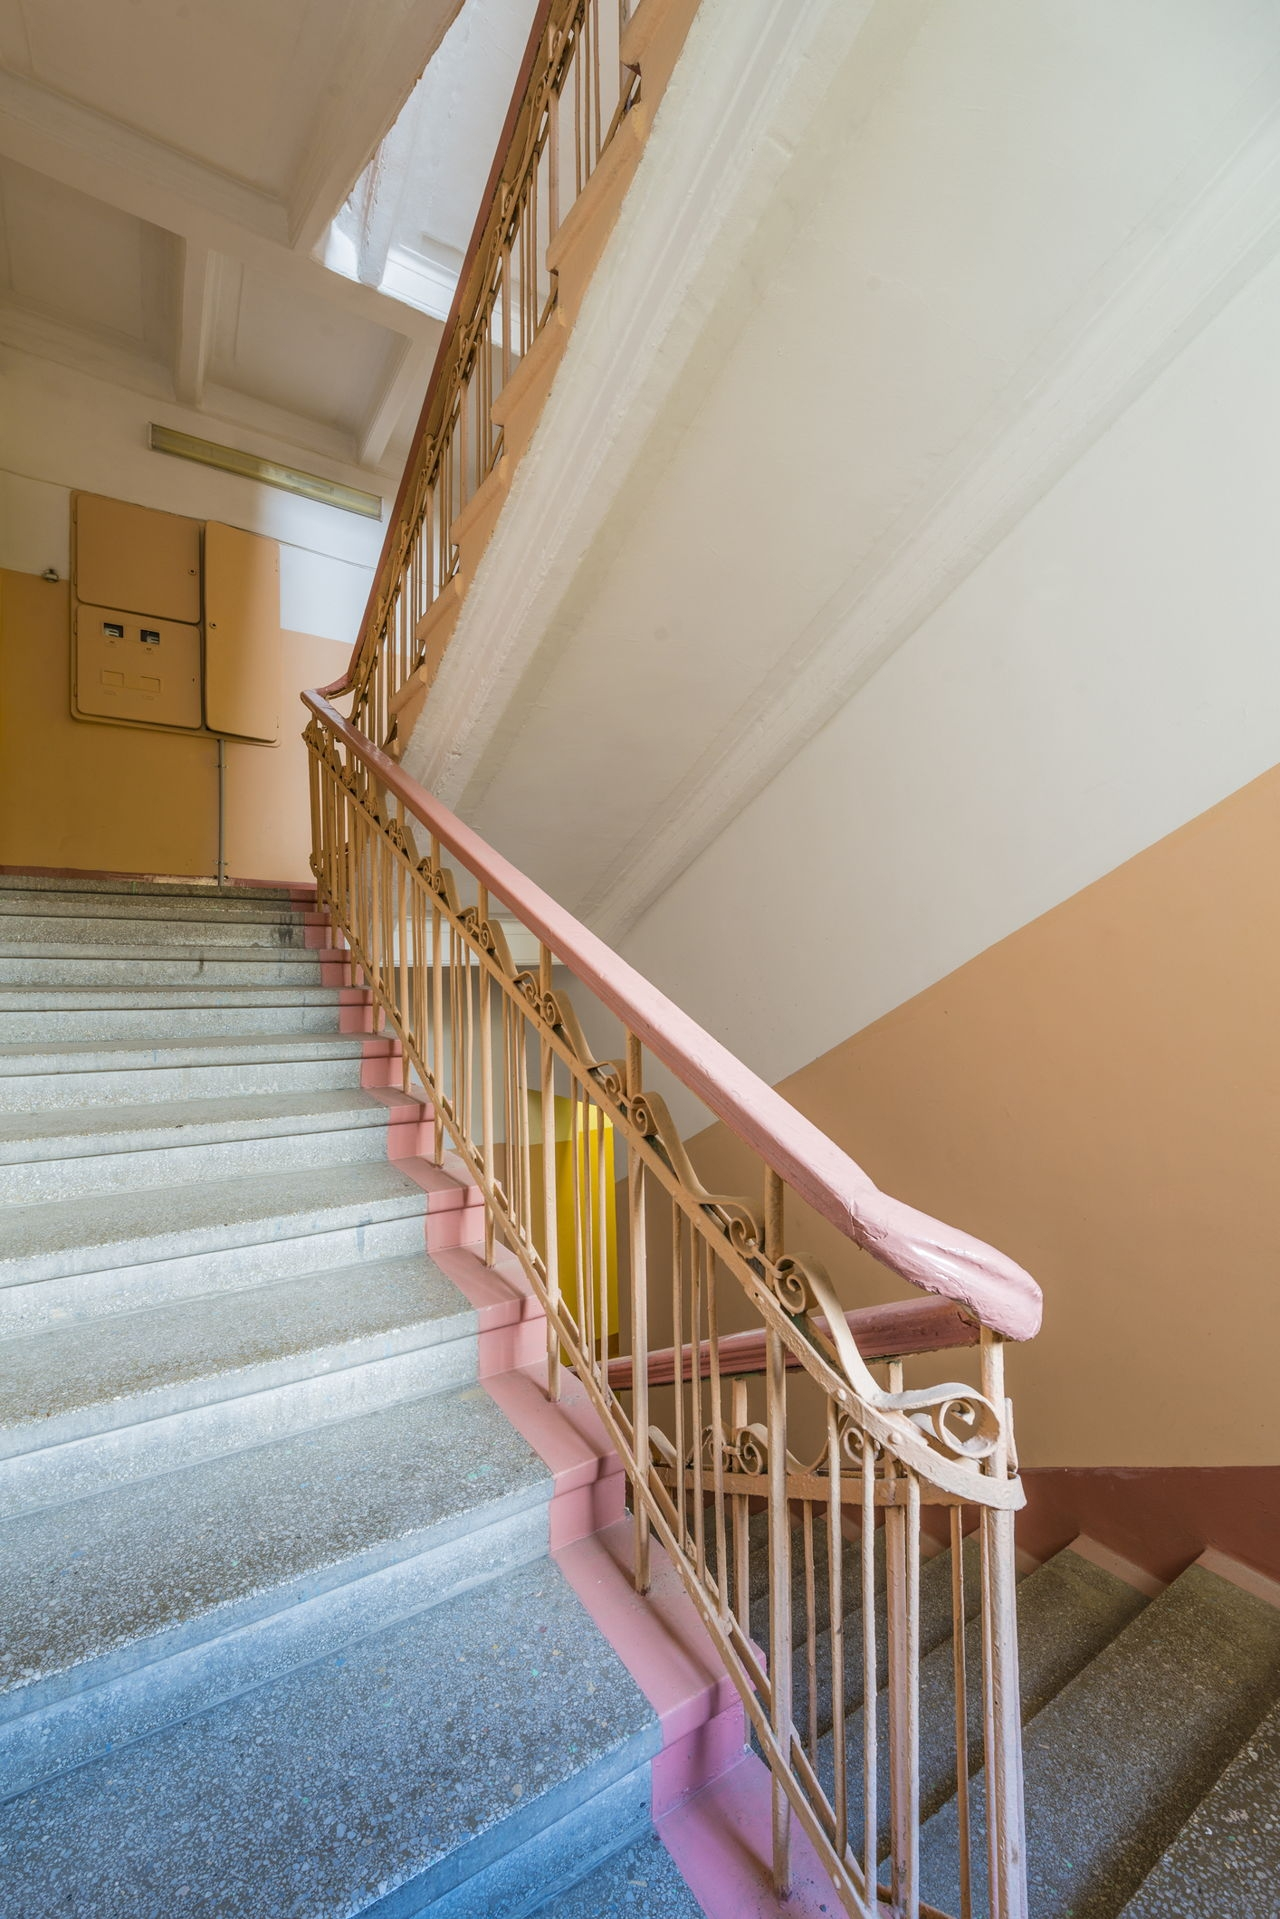 How To Choose The Best Carpet For Stairs | Best Carpet For High Traffic Areas Stairs